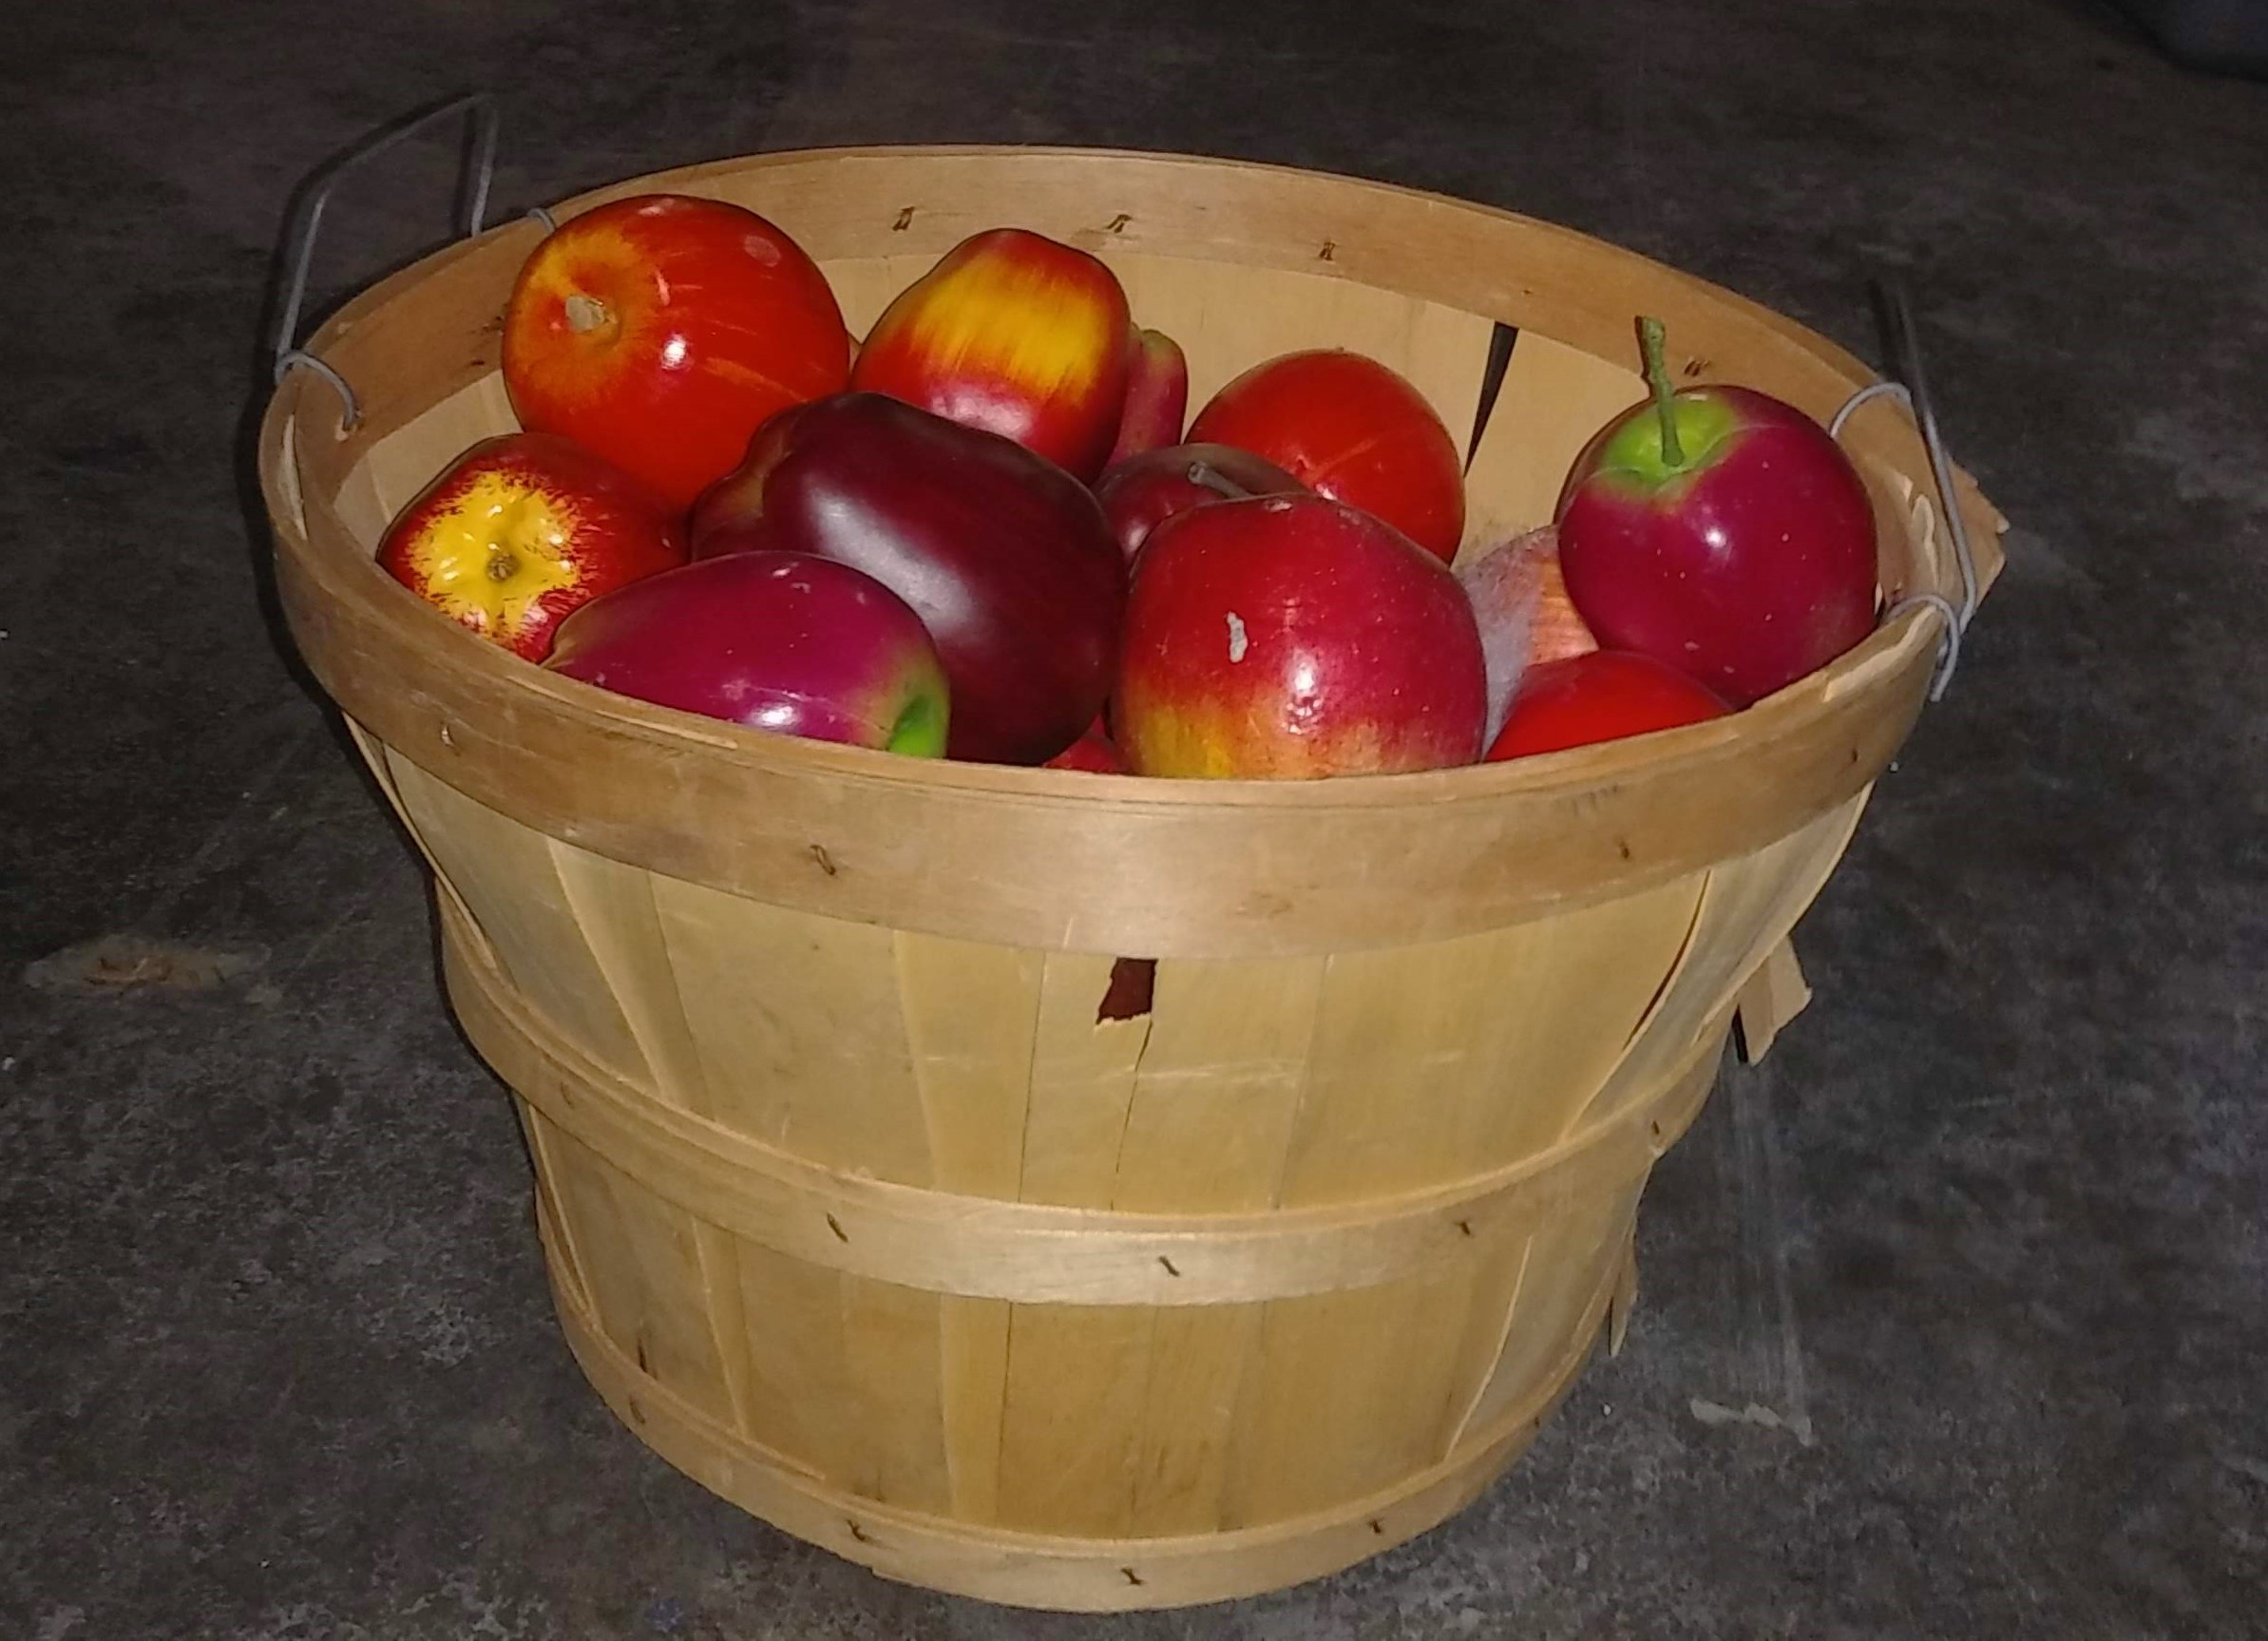 Basket of Applesa